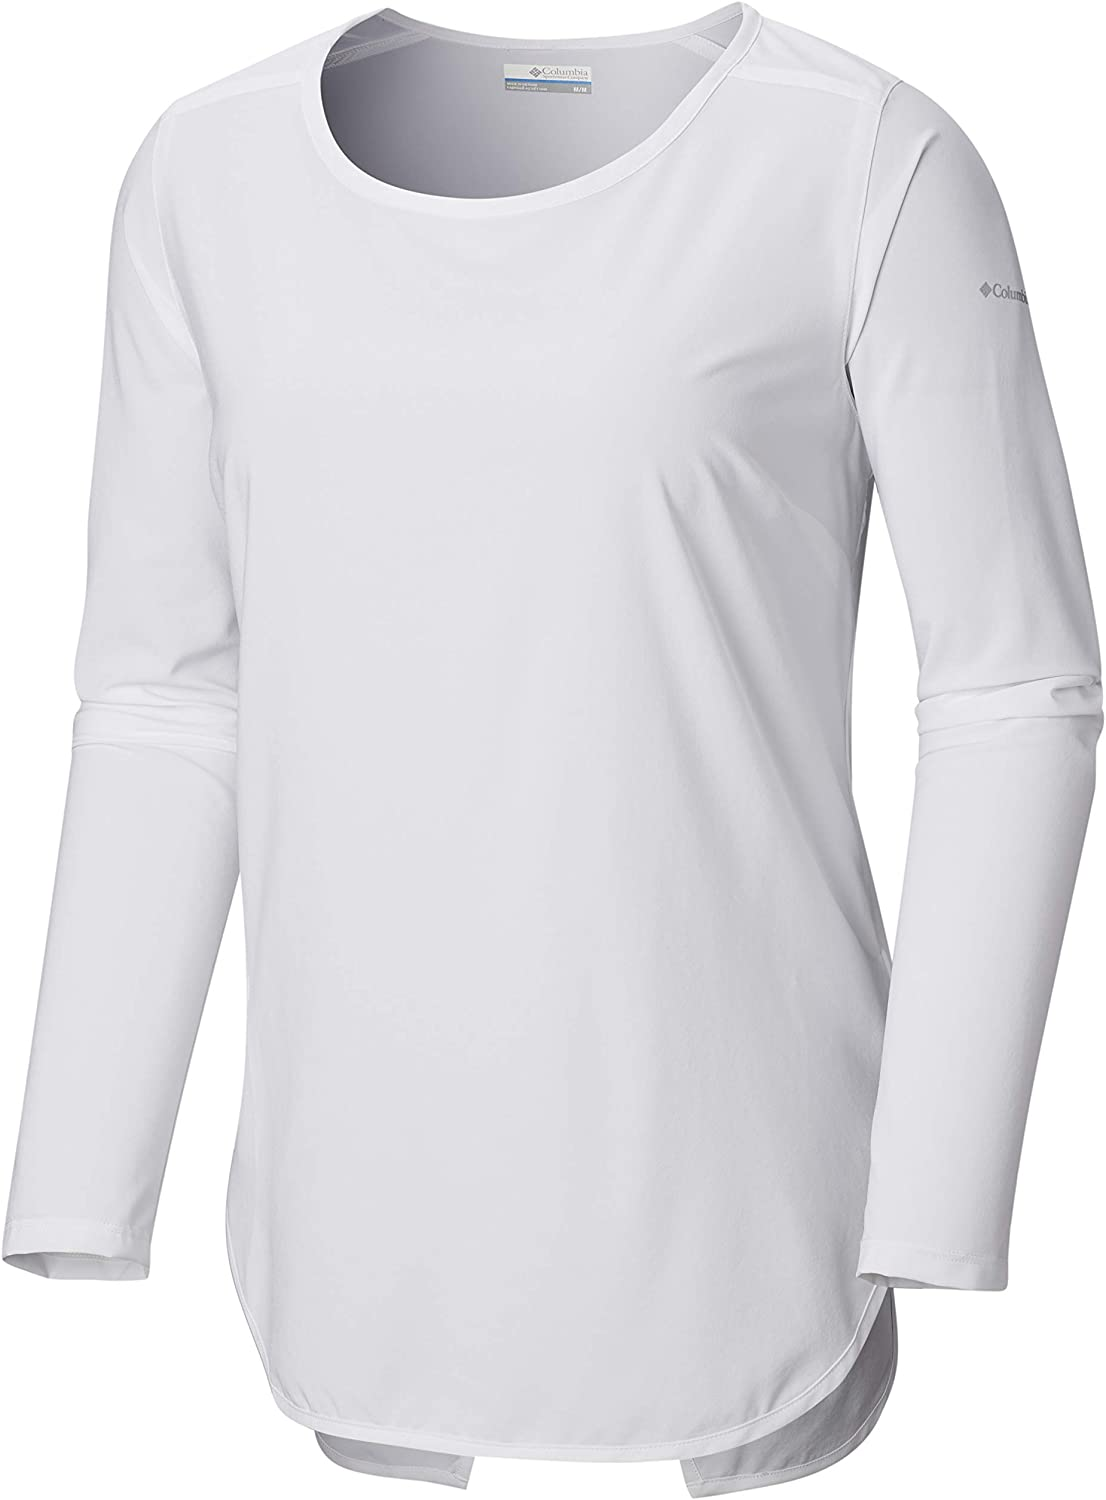 Beauty products Columbia Women's Place To Shirt Sun latest